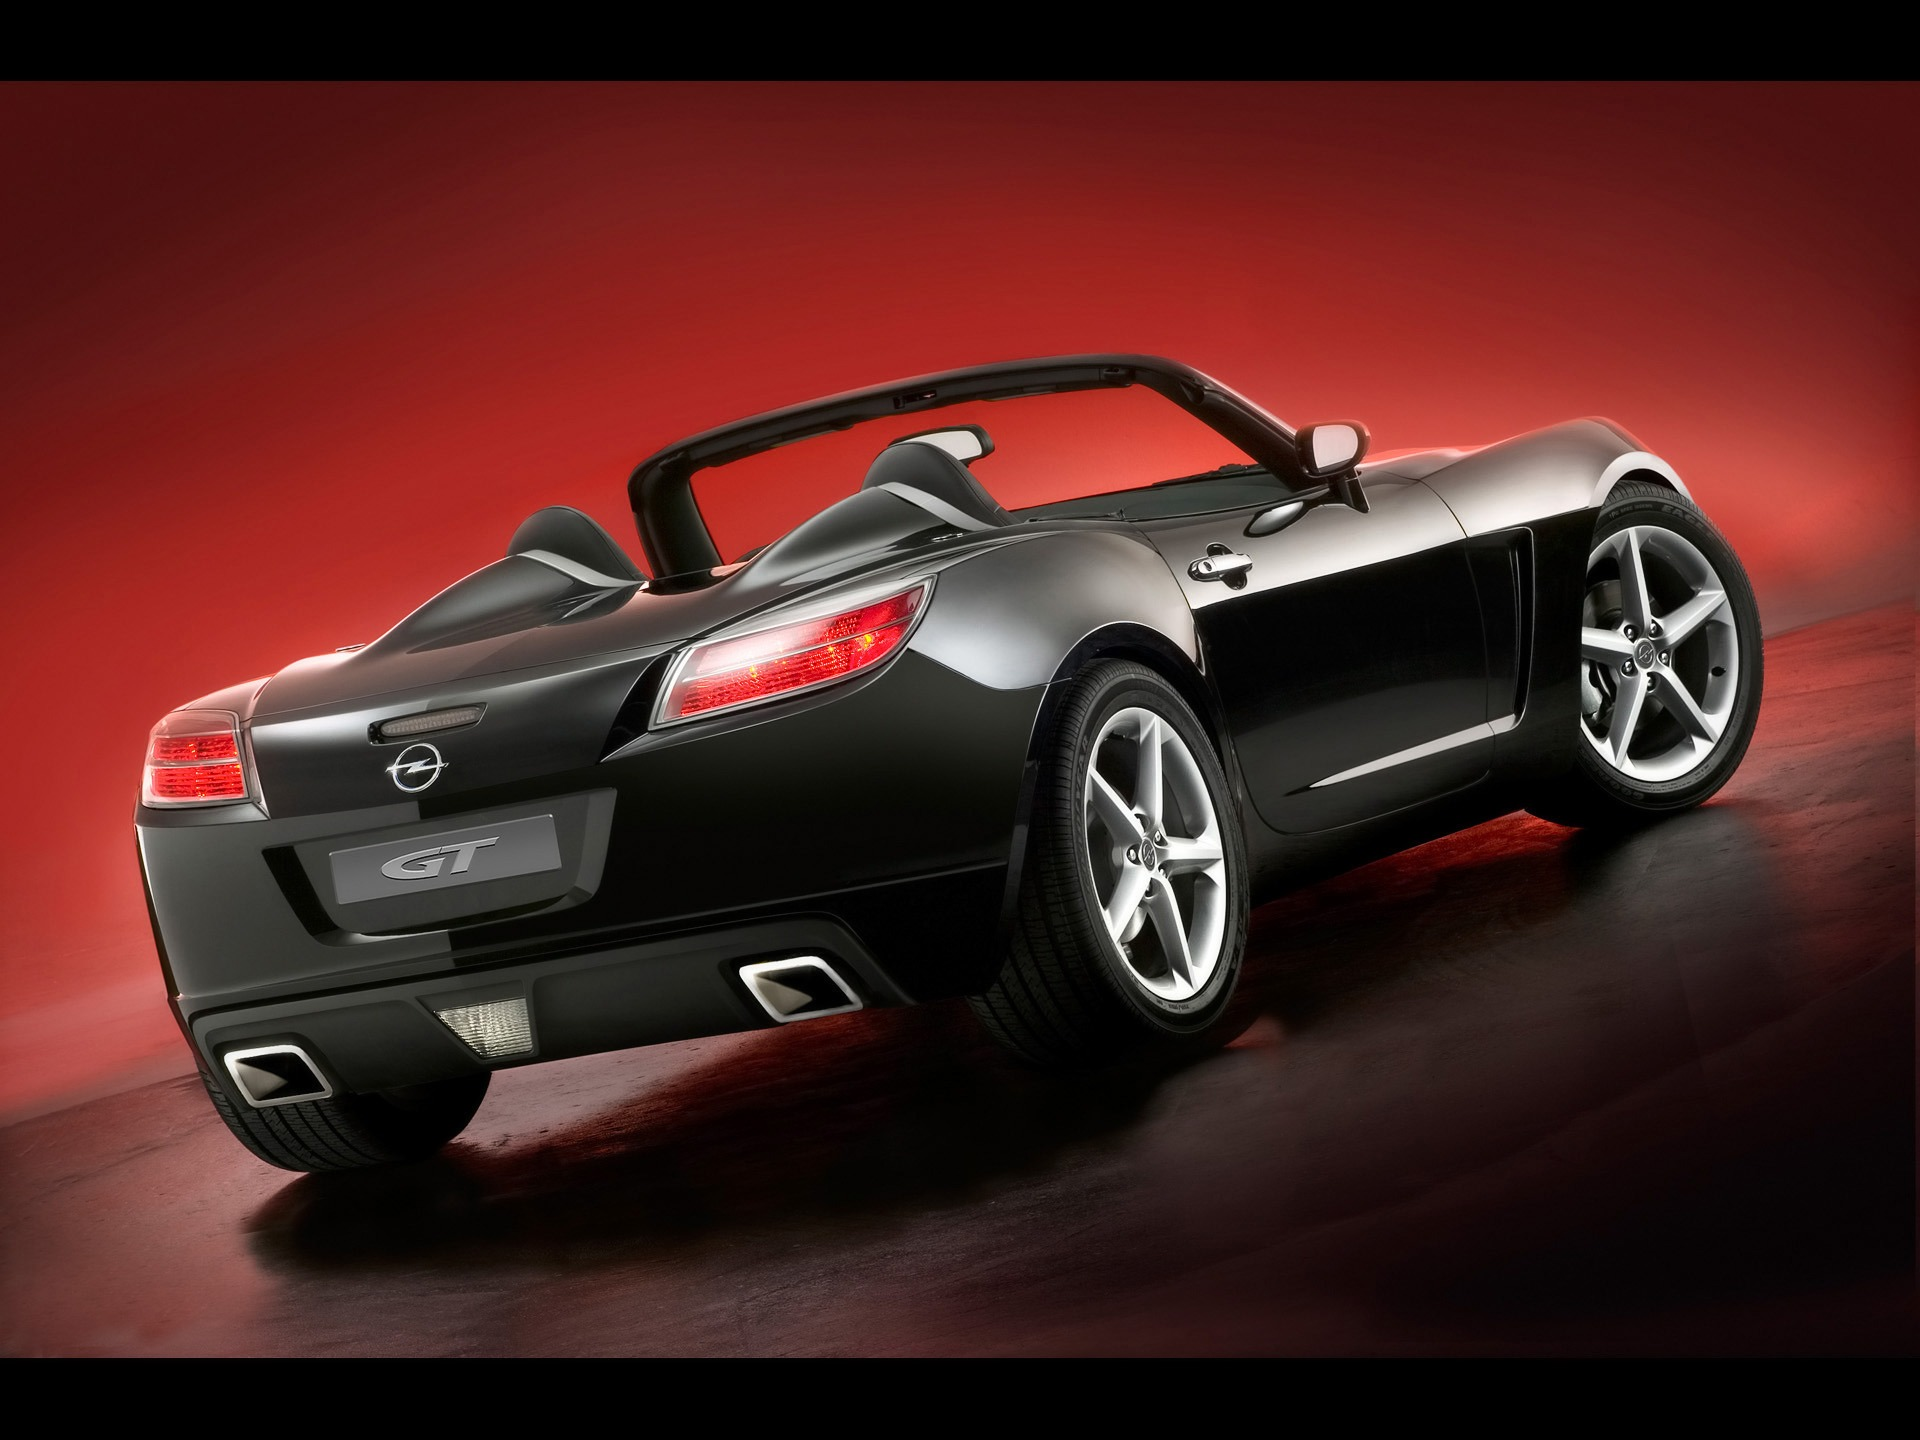 Opel Gt Cabrio Wallpaper Opel Cars Wallpapers In Jpg Format For Free